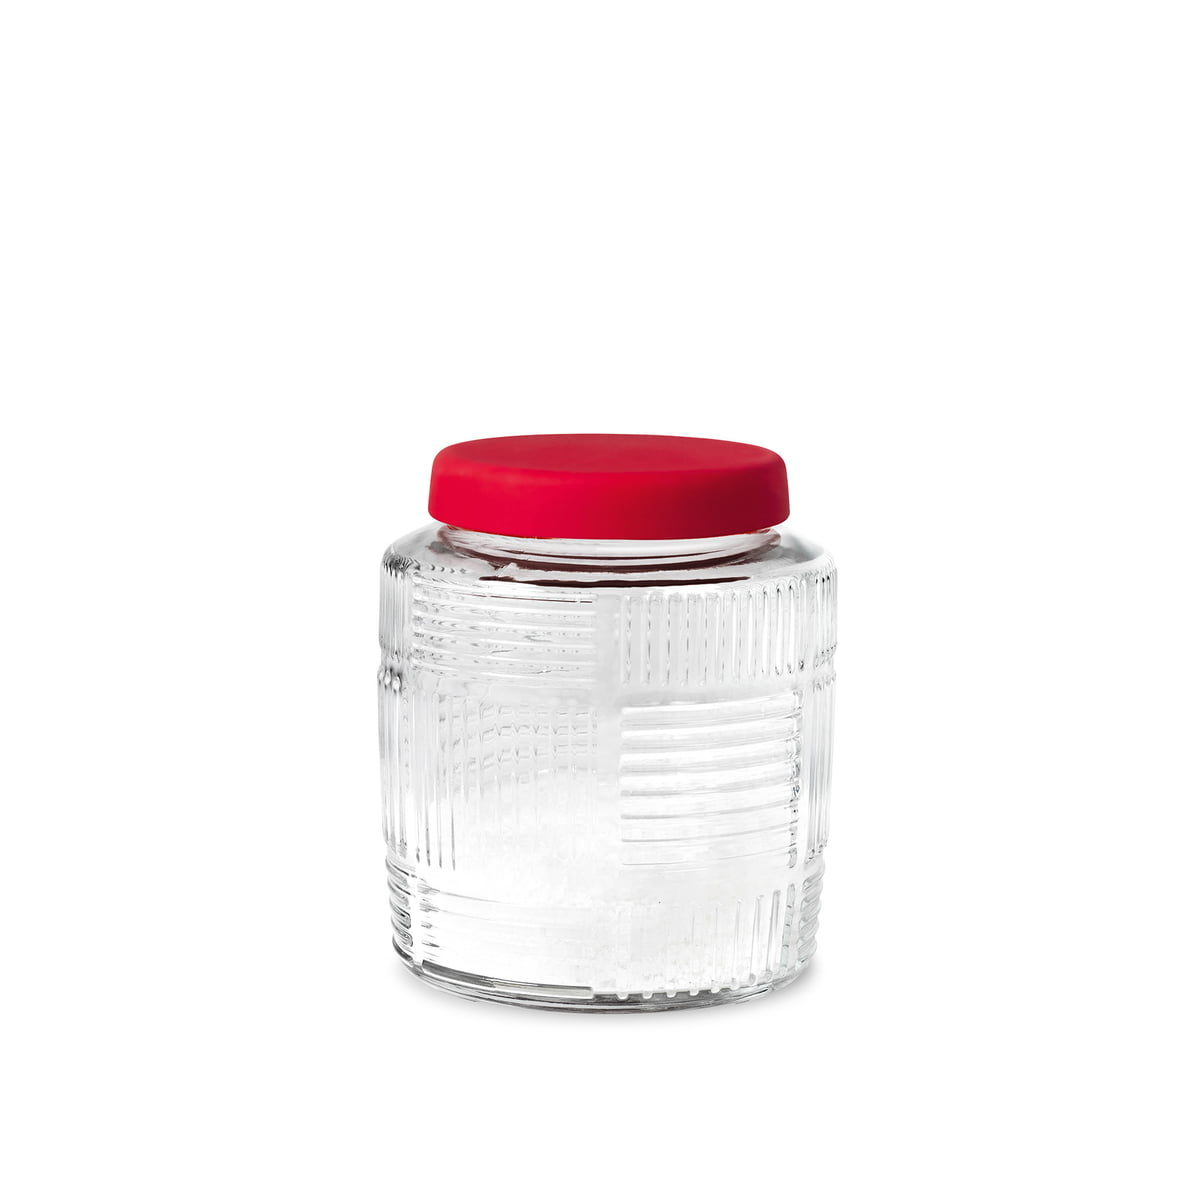 Storage Jar - Red lid, 2.1 Qt